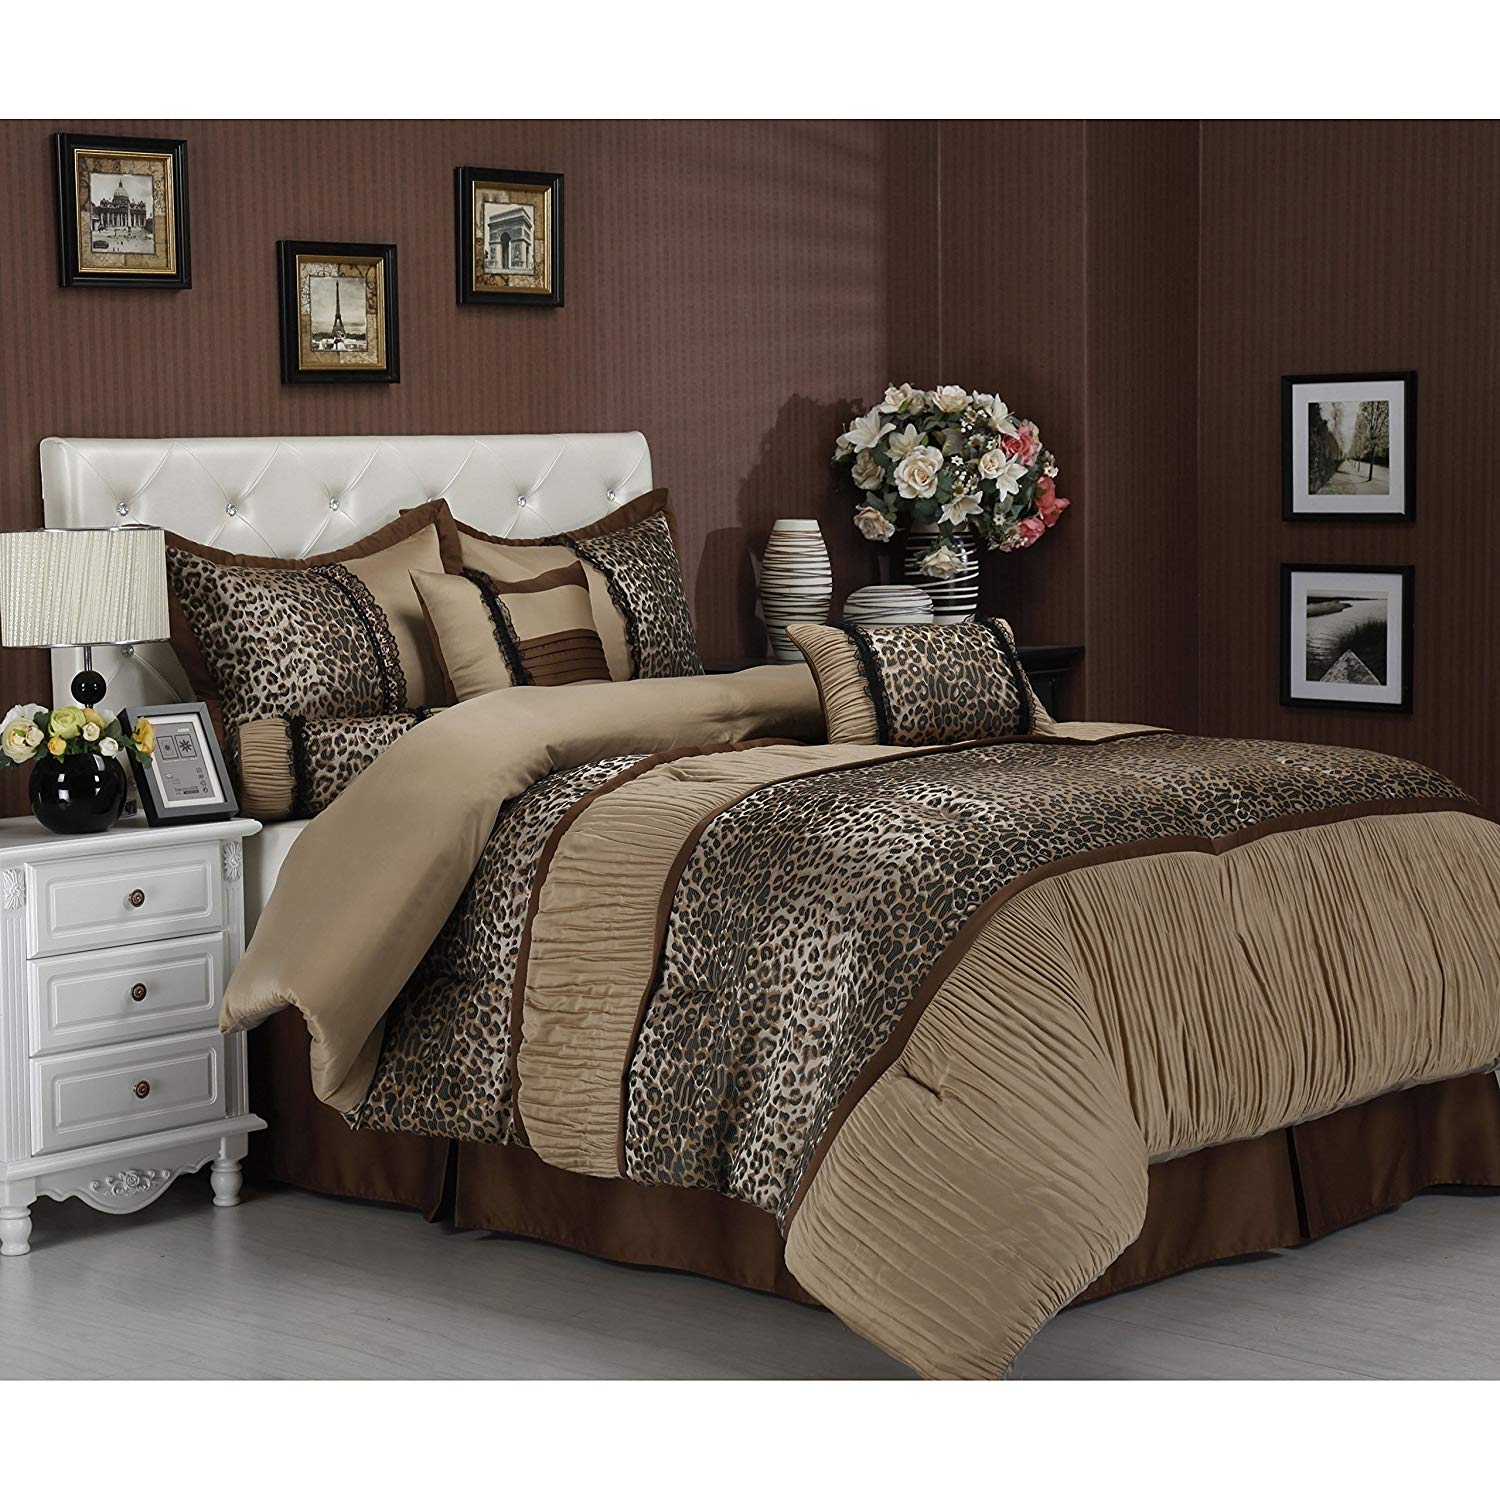 7 Piece Cal King, Modern Exotic Animal Print Pattern Comforter Set, Contemporary High Class Leopard Printed Design, Traditional Classic Ruched Themed, Luxury Mid-Century Bedding, Adorable Beige Color